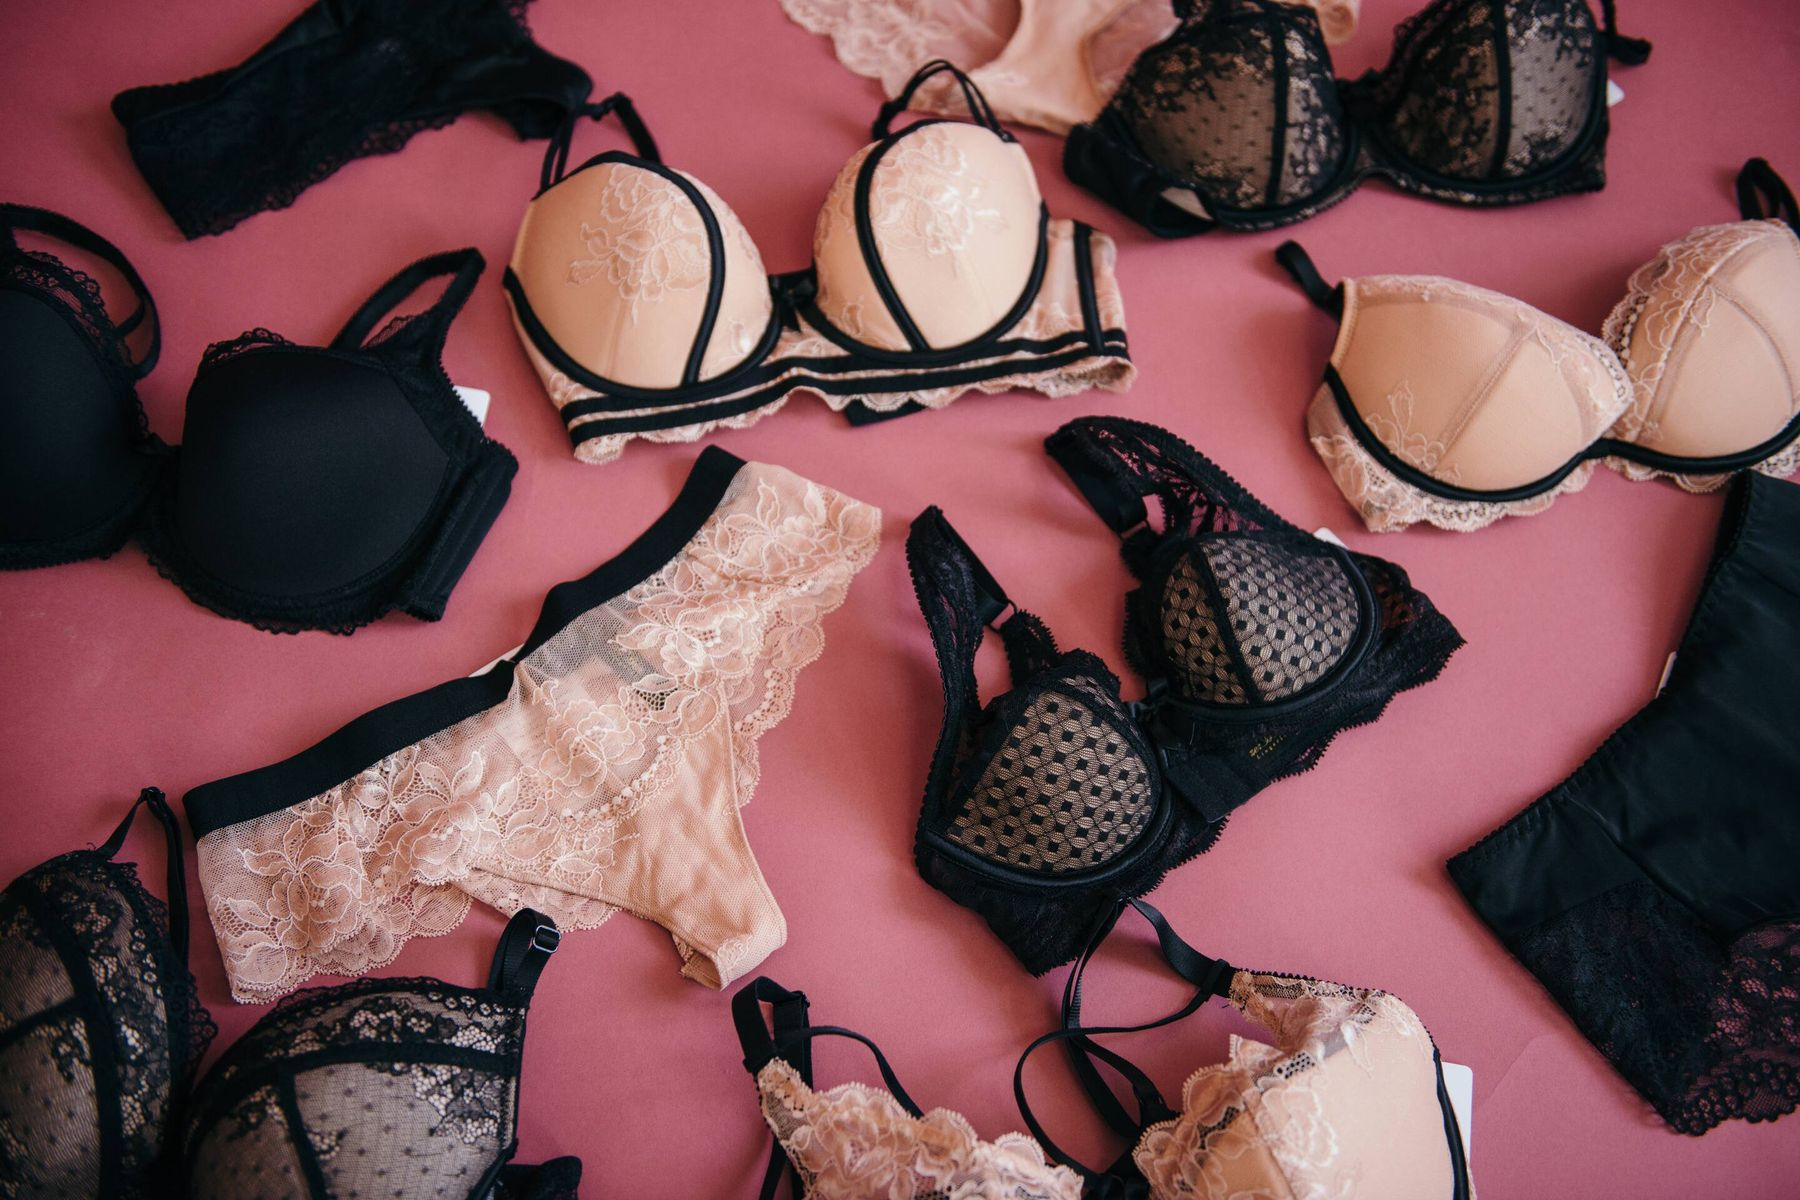 Easy Steps to Keep Your Delicate Lingerie Smelling Great